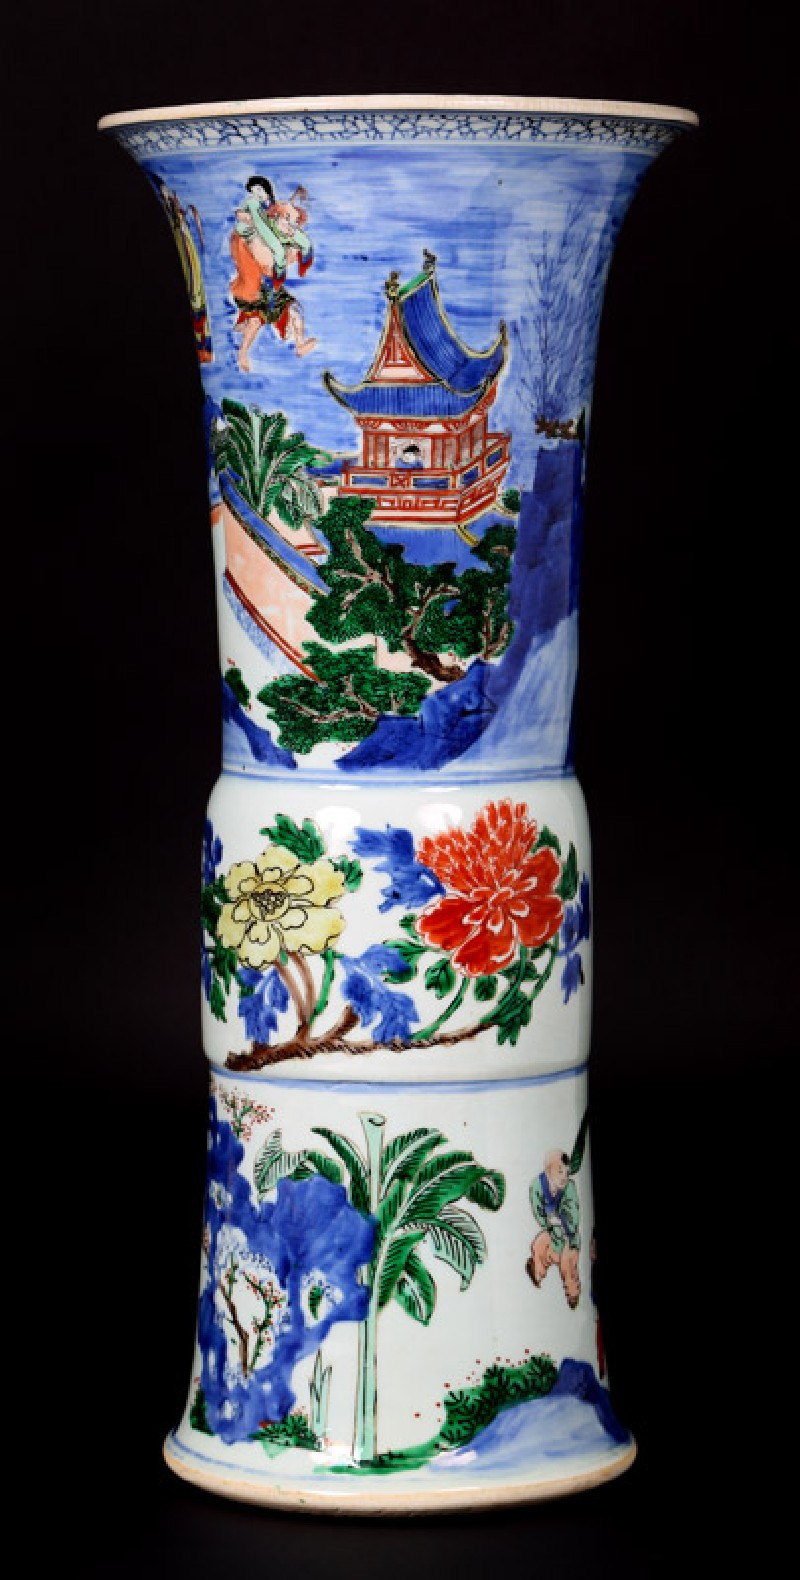 Beaker vase with flowers and figures in boats (front             )